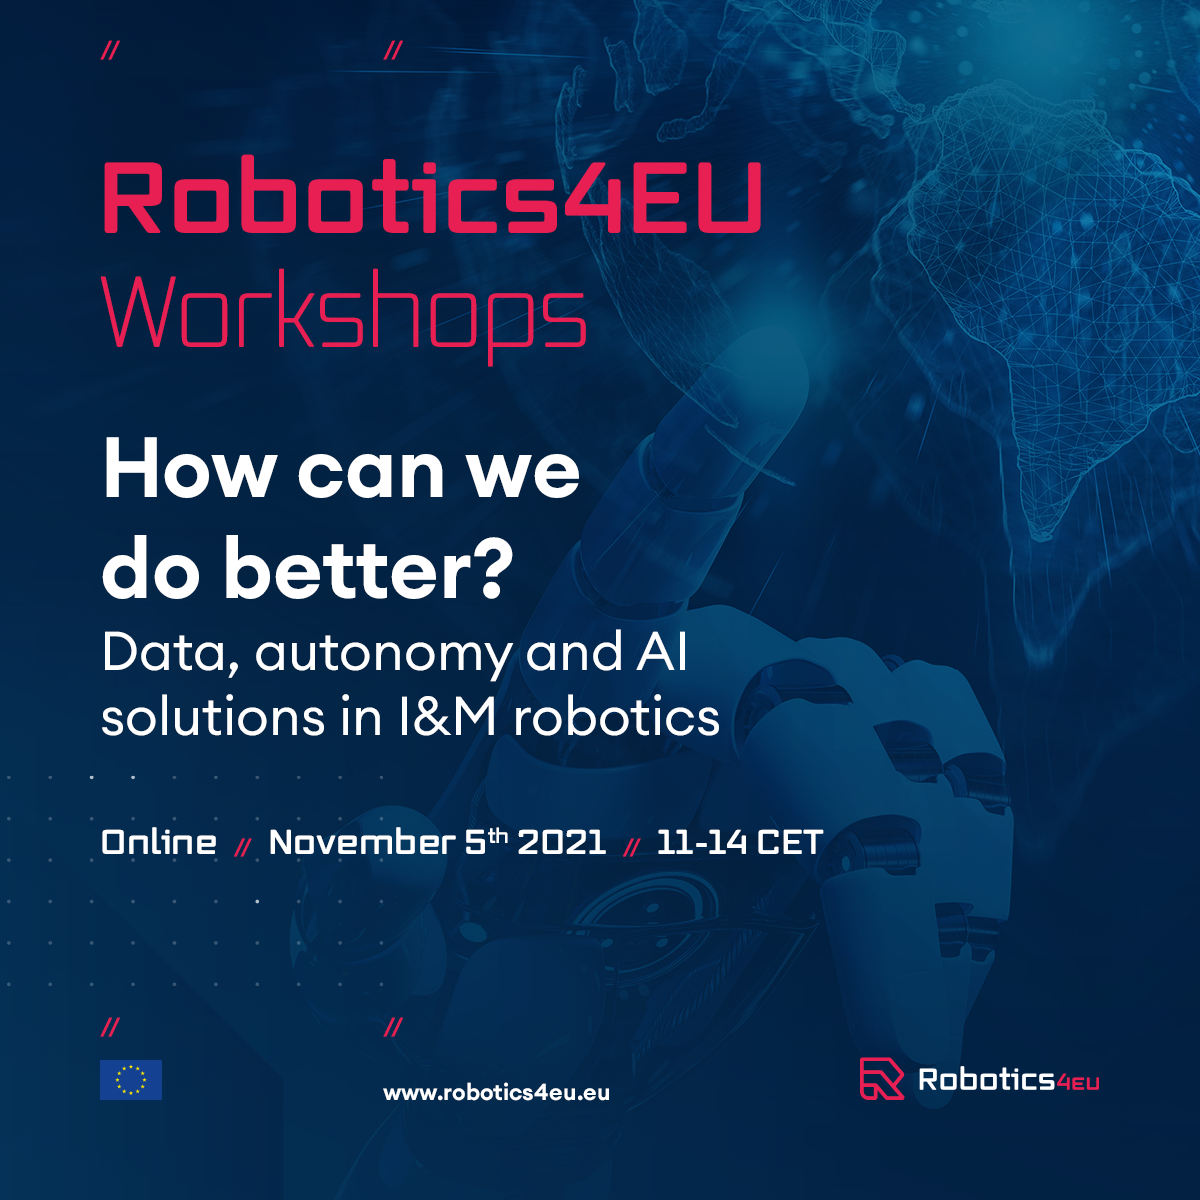 Workshop   How can we do better? Data, autonomy and AI solutions in I&M robotics